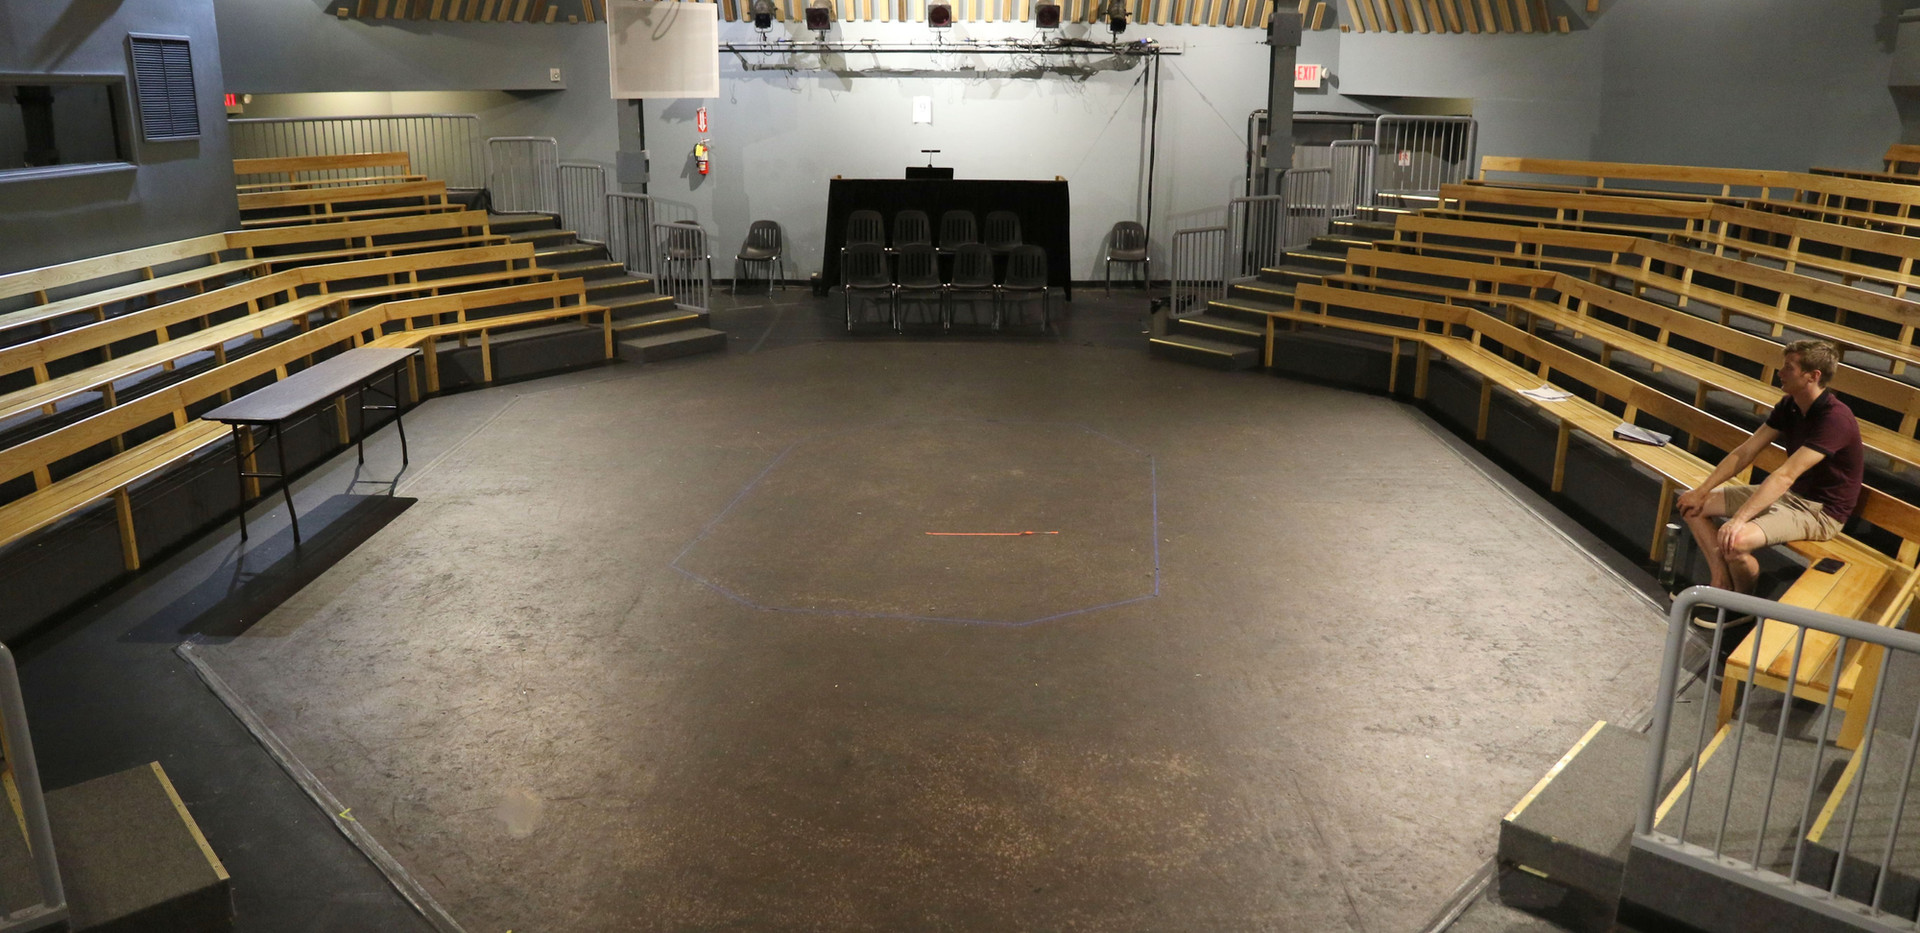 The Oasis Theater